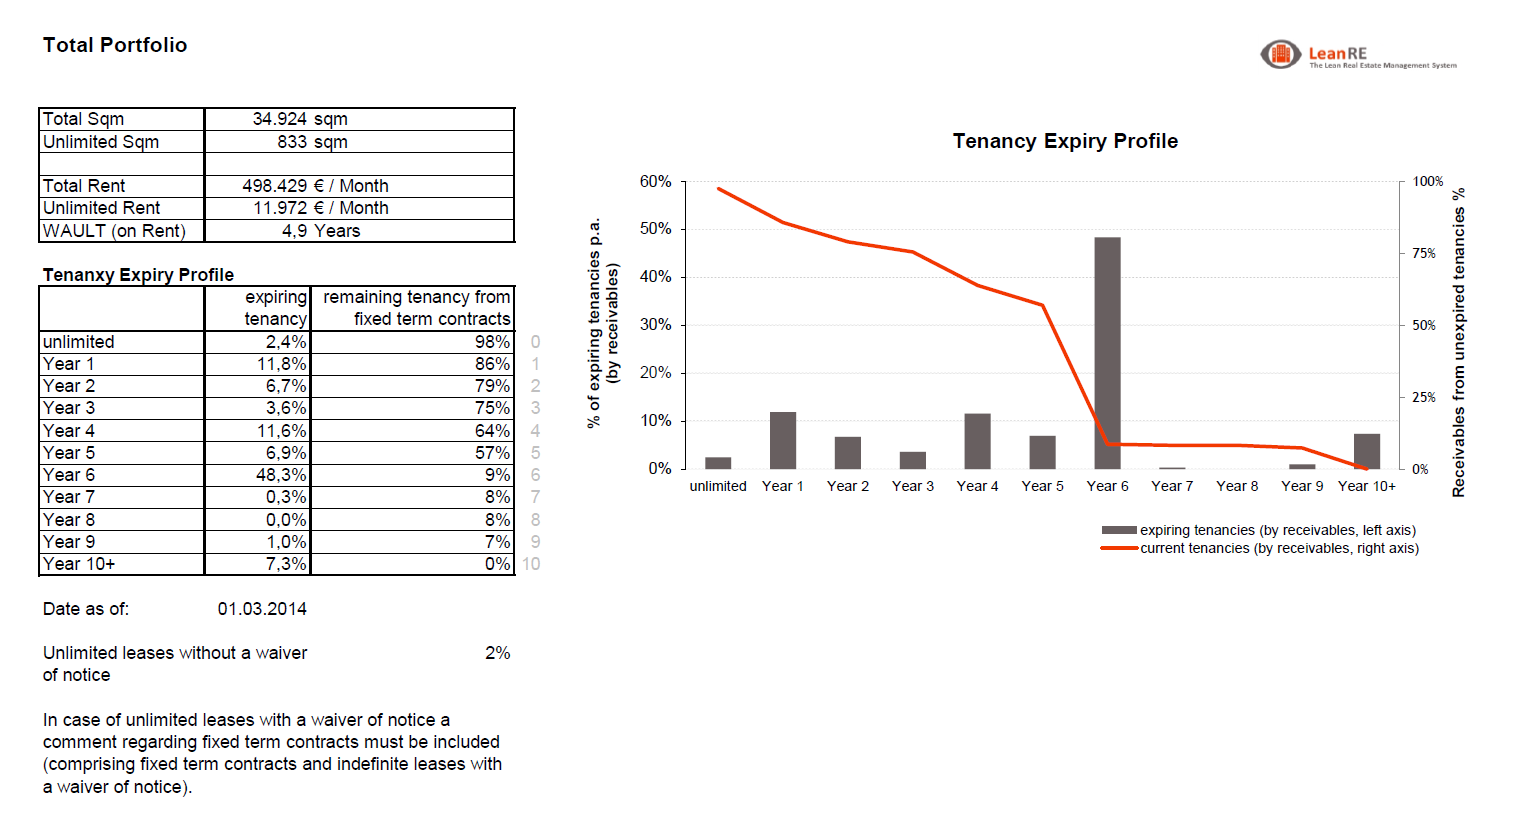 LeanRE Tenancy Expiry Profile